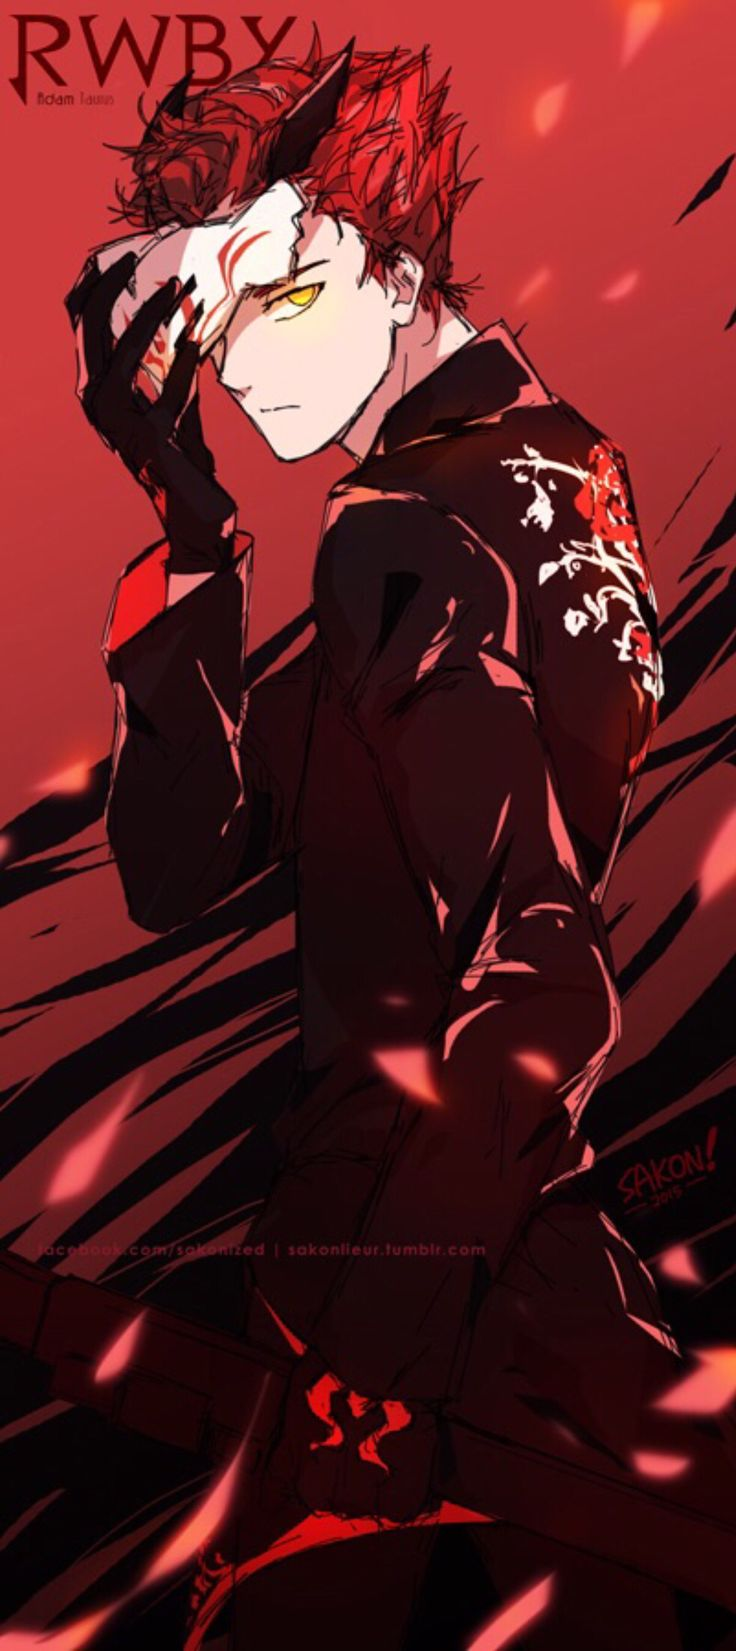 ((Open rp)) *i look over at you and quickly put my mask on* what do you want? *i growl*